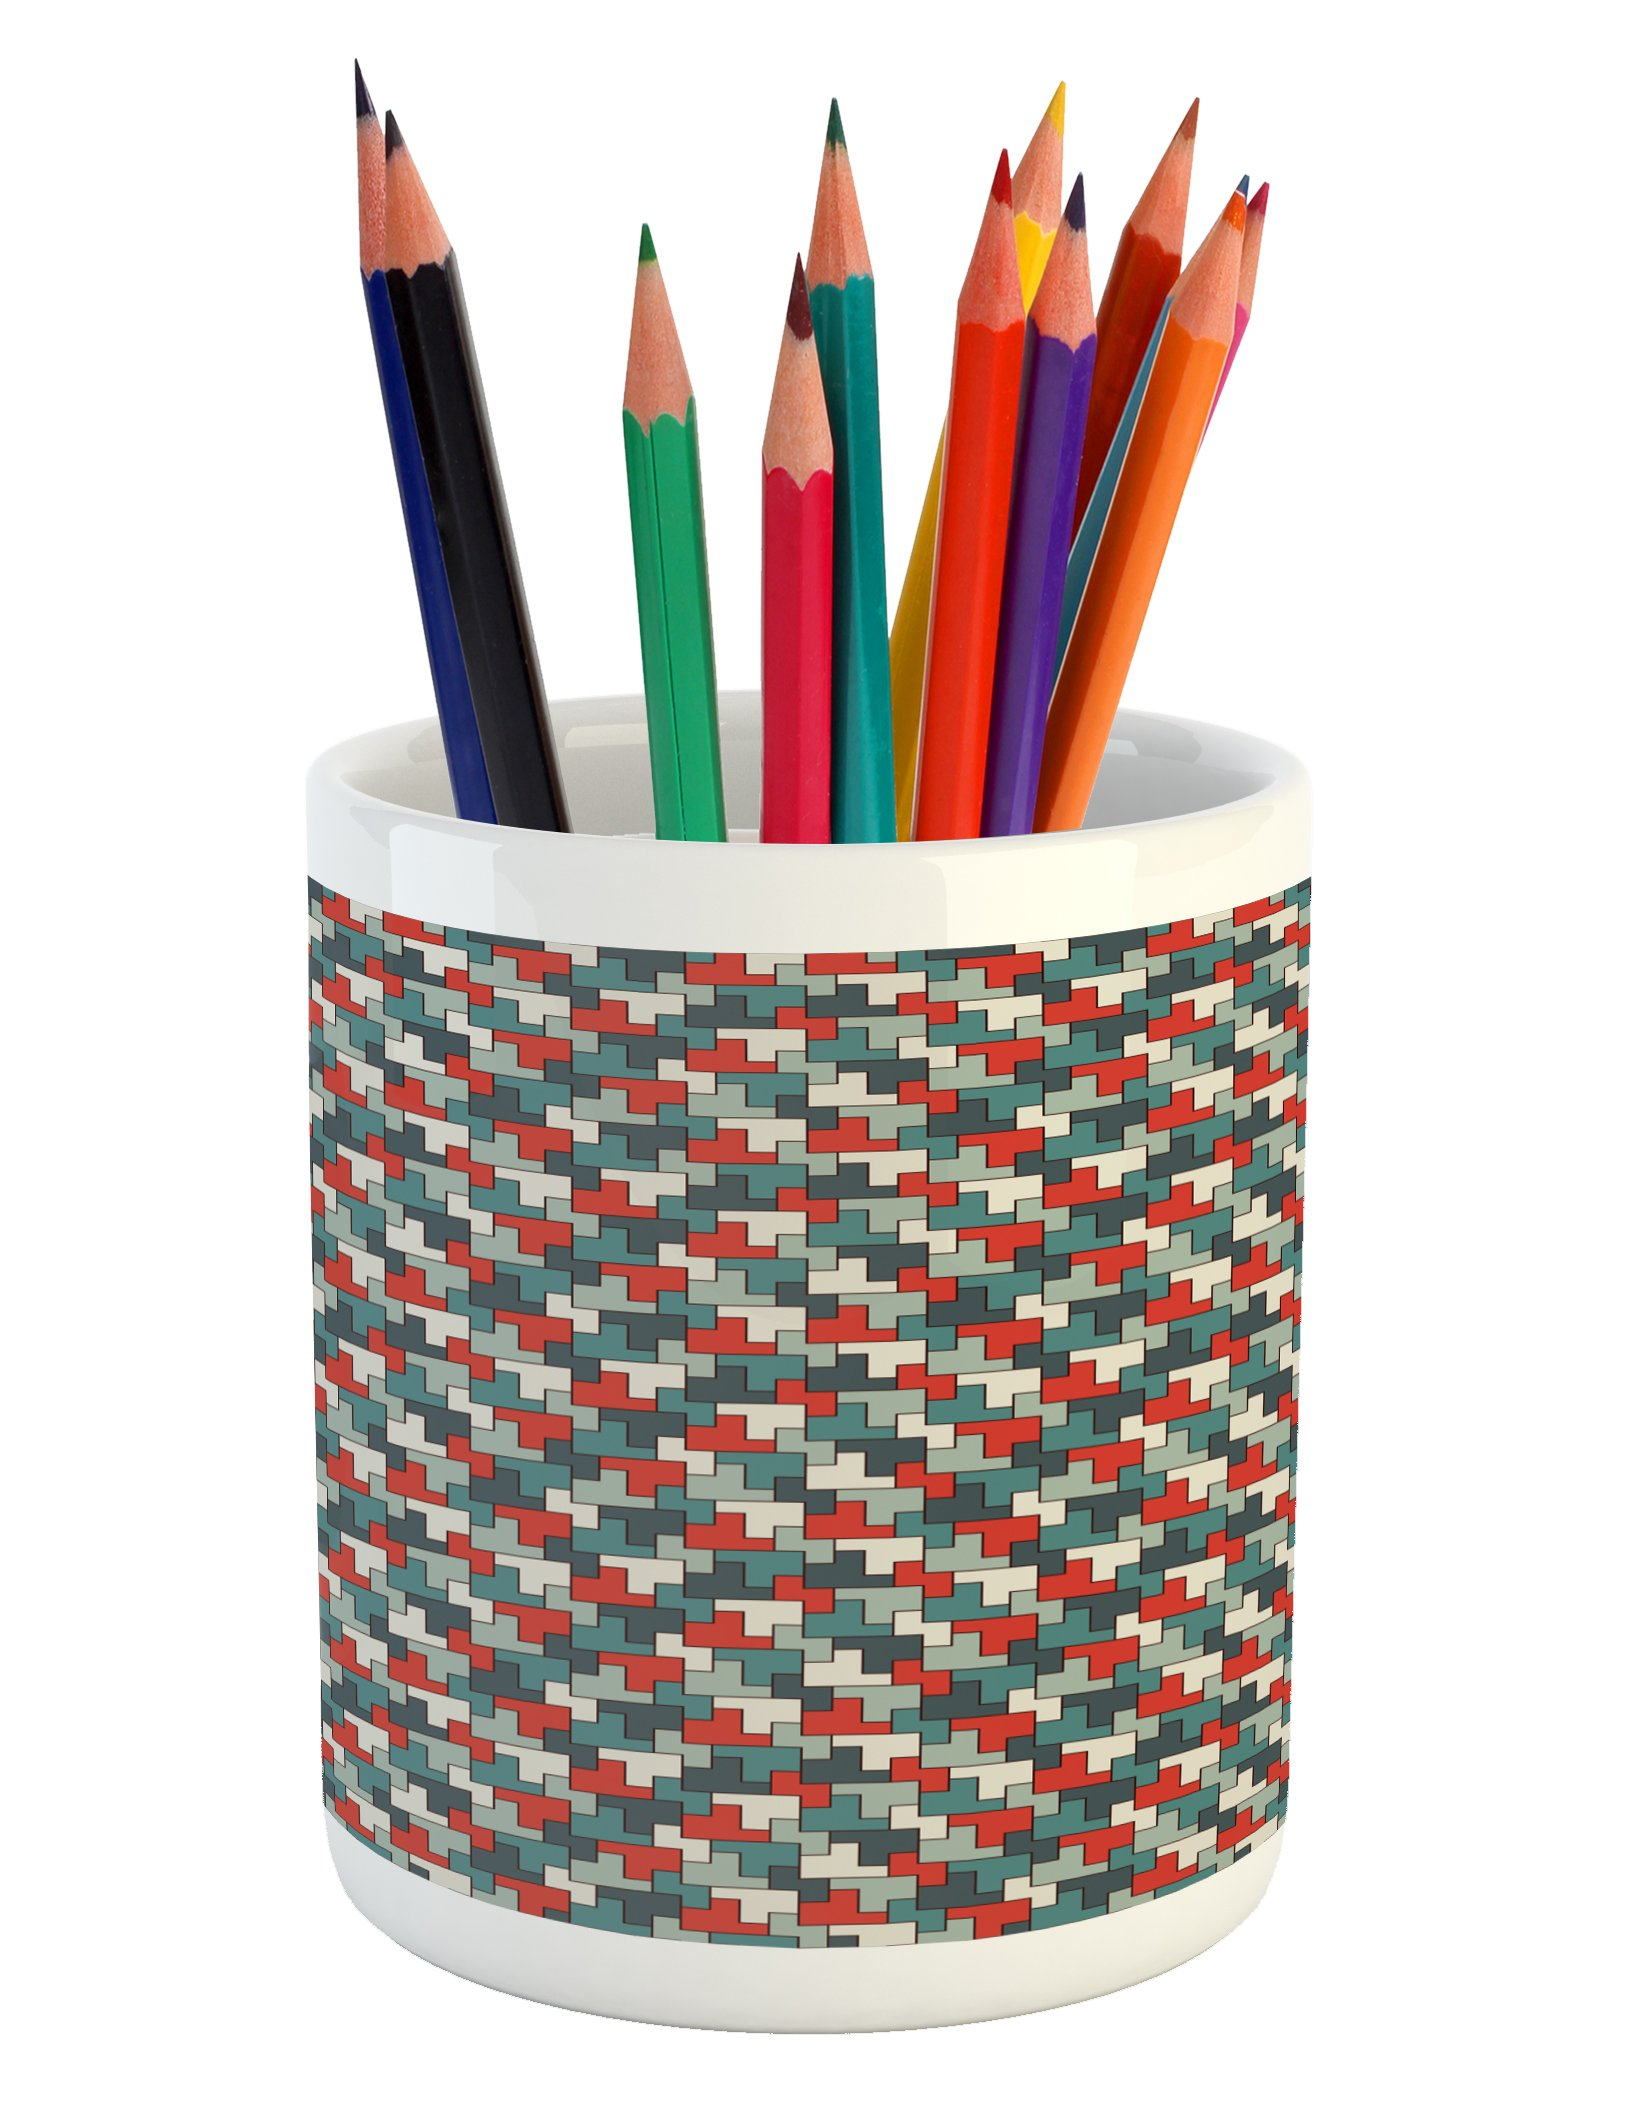 Ambesonne Abstract Pencil Pen Holder, Repeating Puzzle Mosaic Pattern with Simple Geometric Ornament Modern and Funky, Printed Ceramic Pencil Pen Holder for Desk Office Accessory, Multicolor